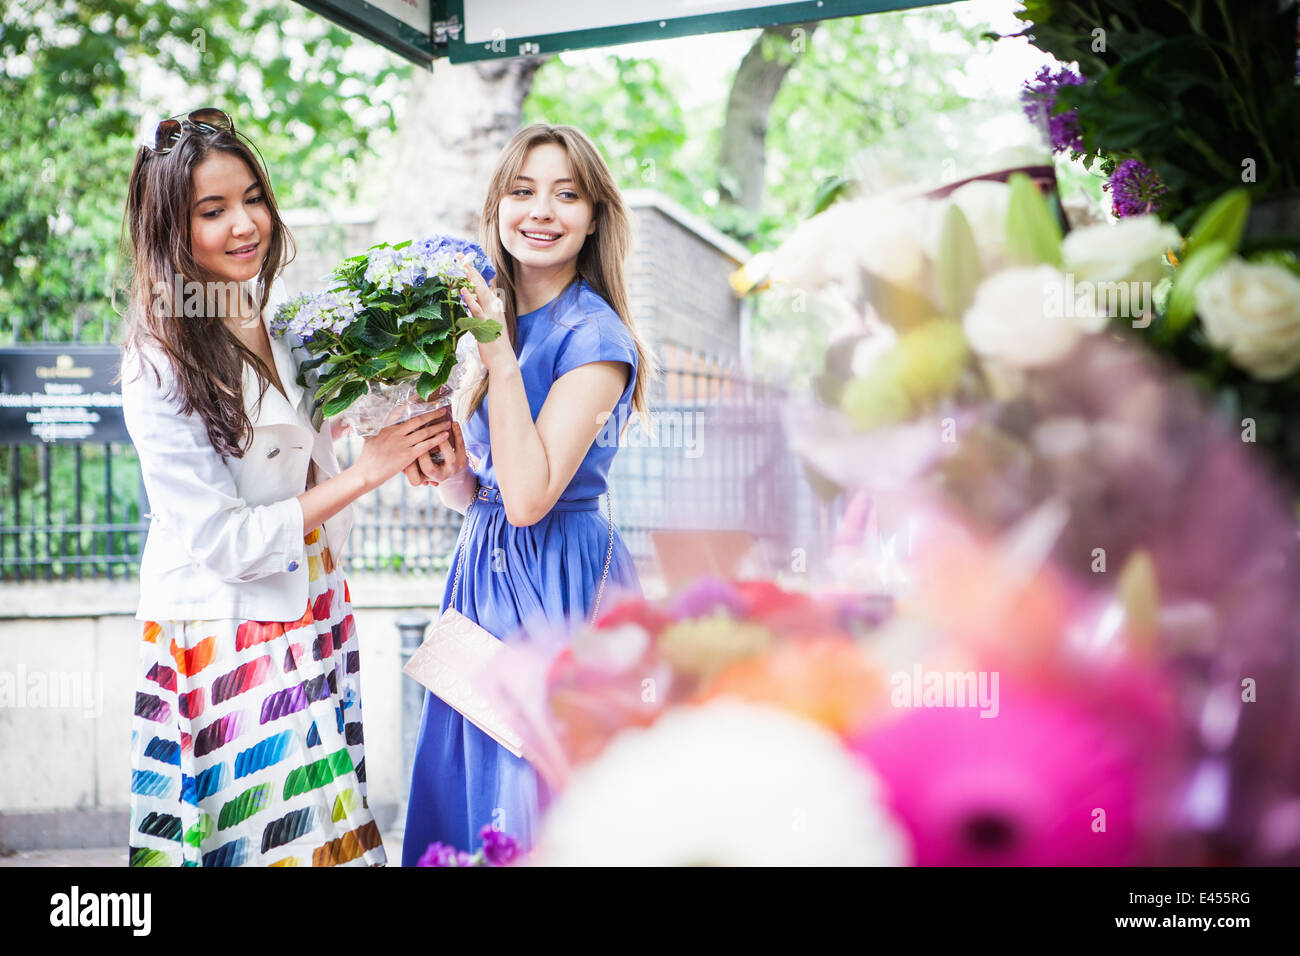 Two young women picking up potted plant - Stock Image